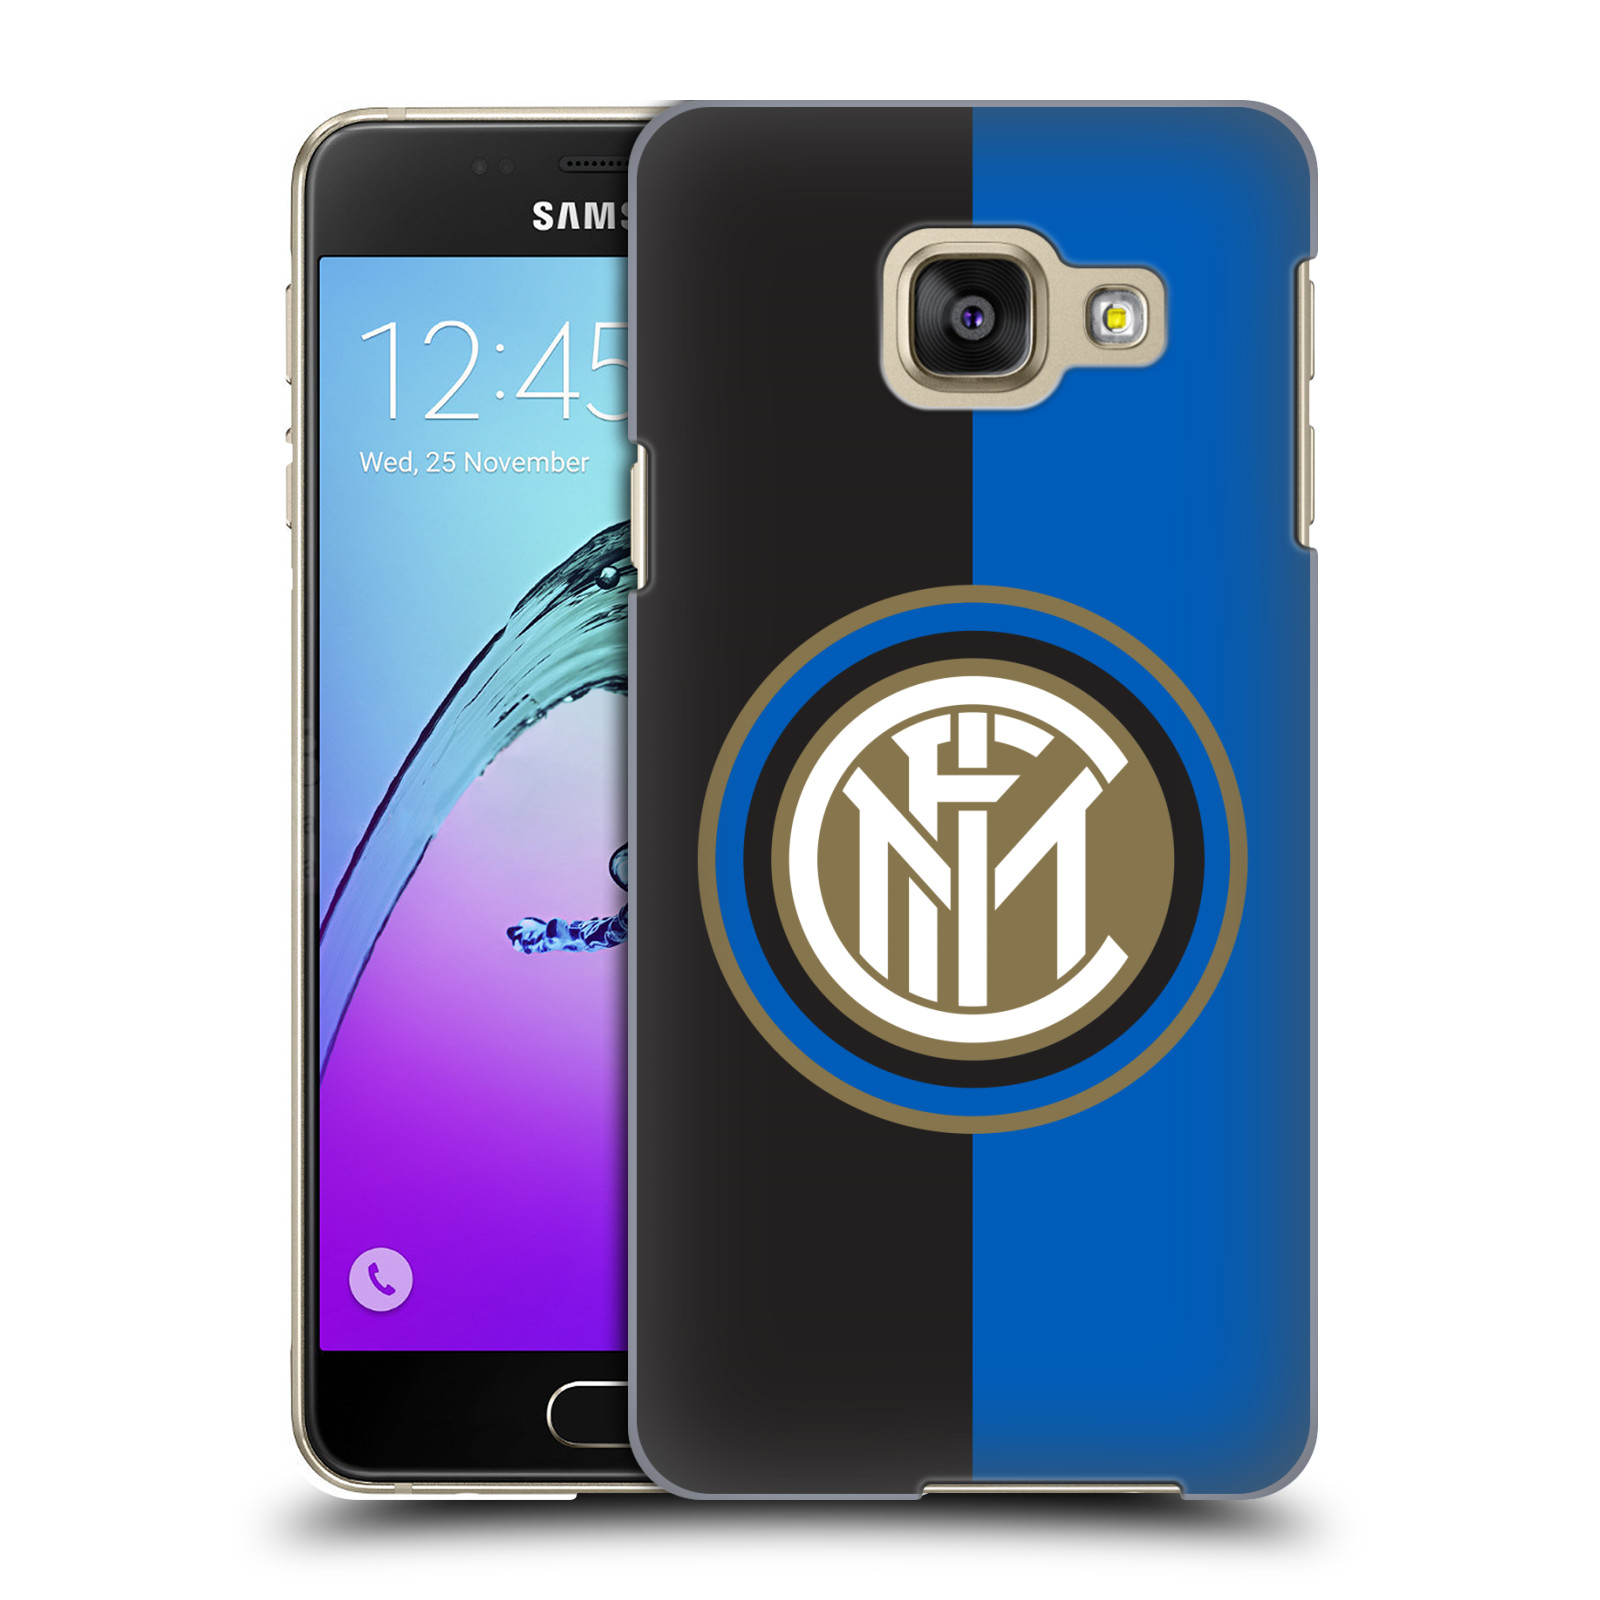 Plastové pouzdro na mobil Samsung Galaxy A3 (2016) - Head Case - Inter Milan - Black and blue